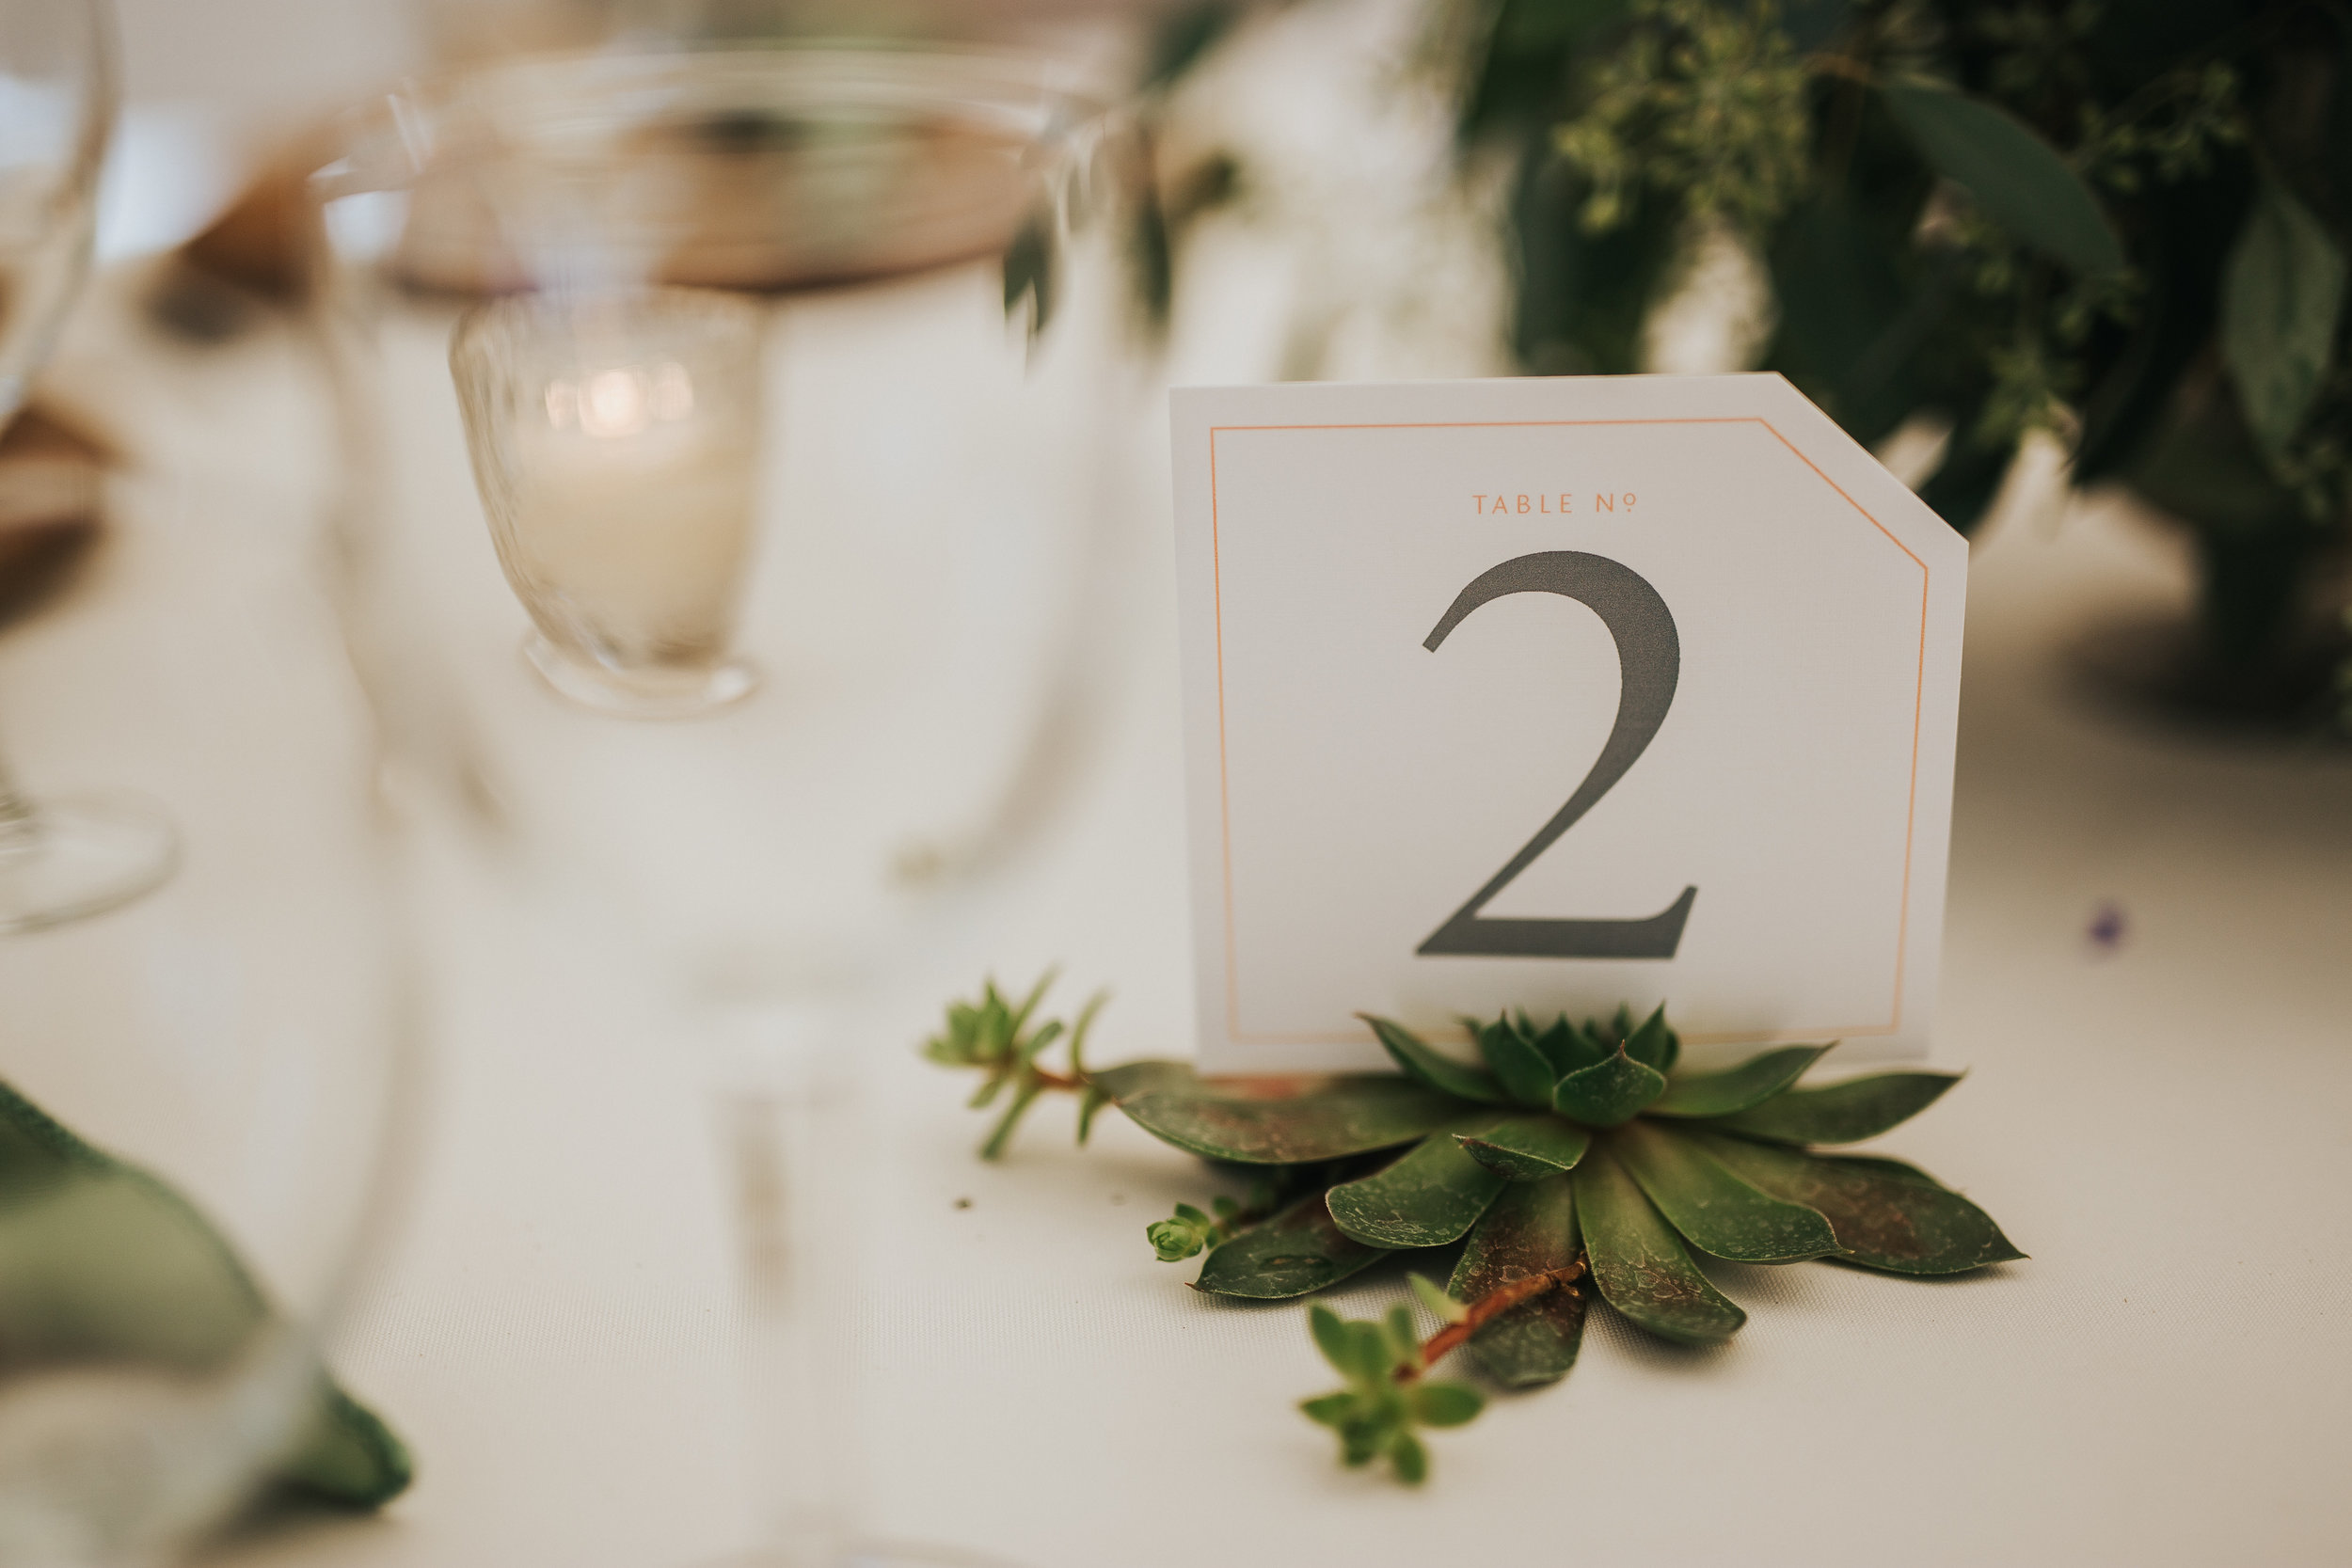 Penticton Wedding Table Number.jpg